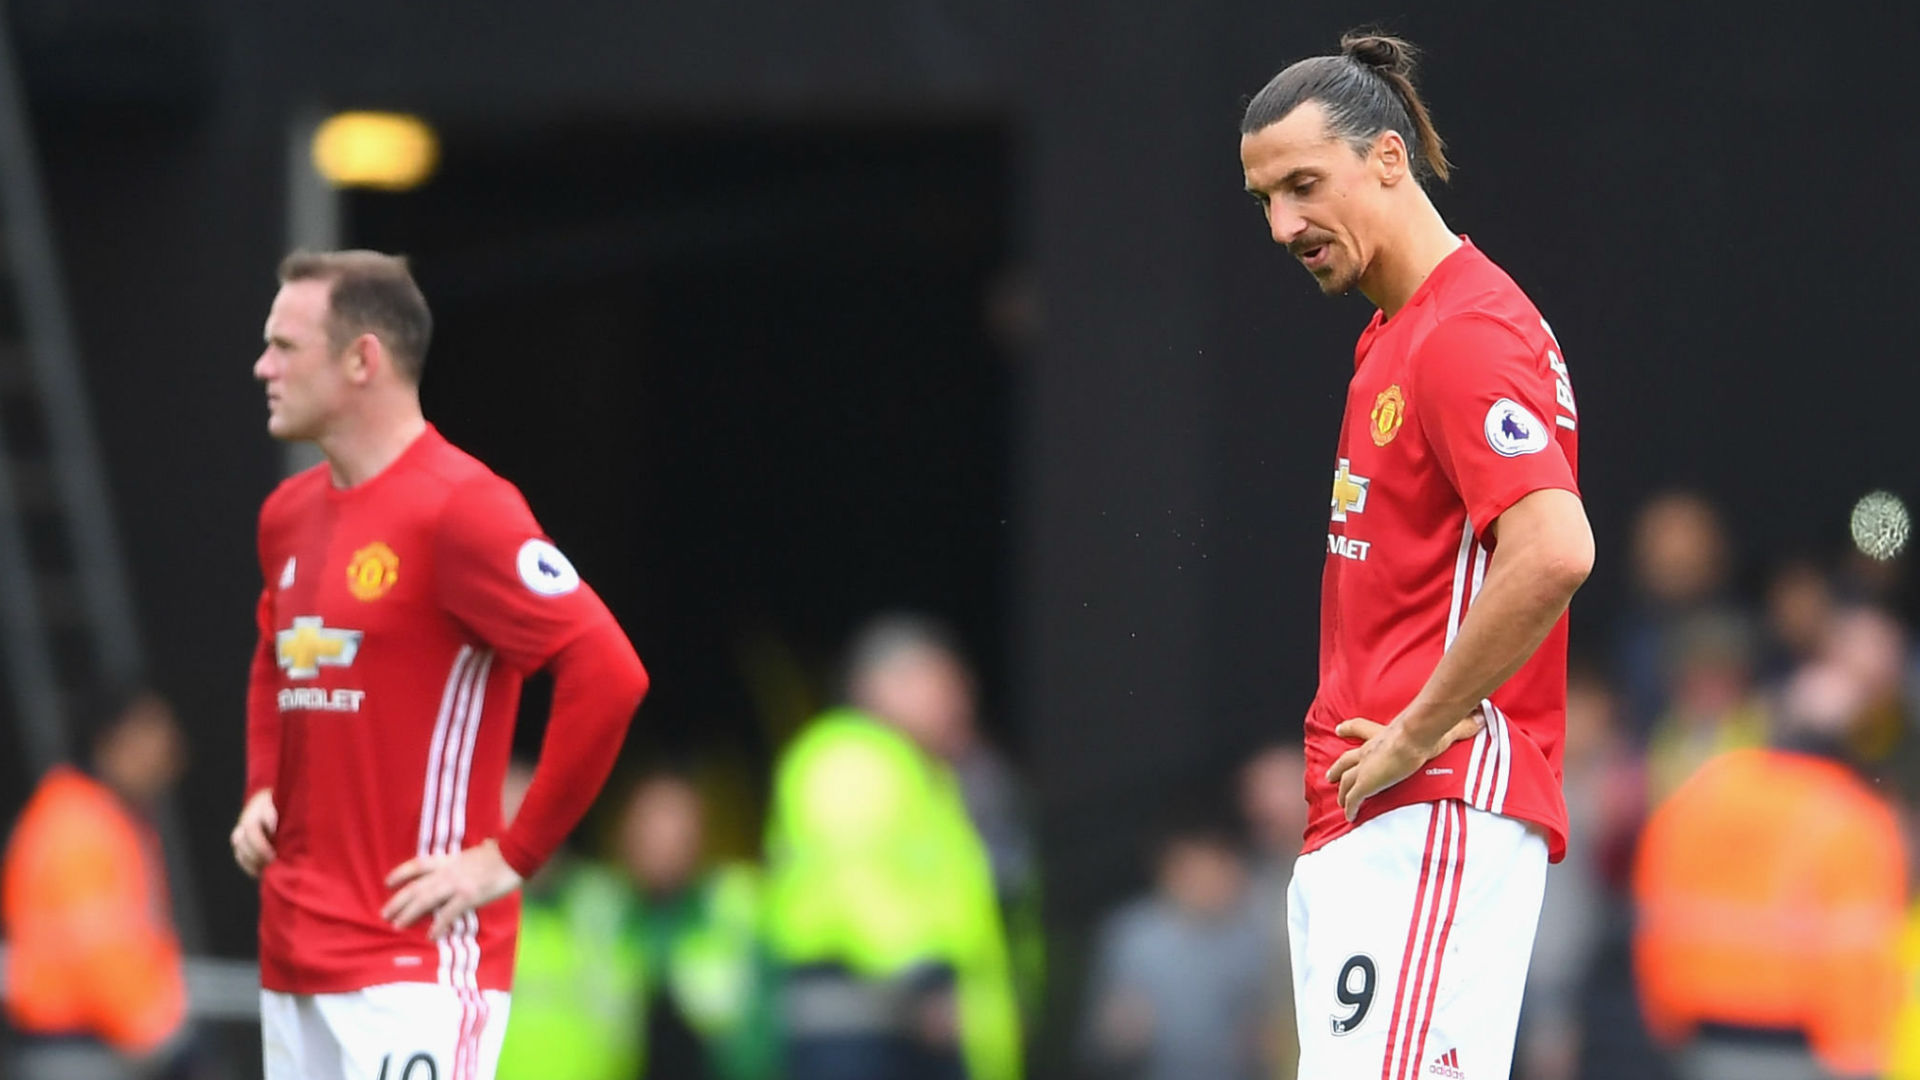 Wayne Rooney can learn from Ibra's more direct approach